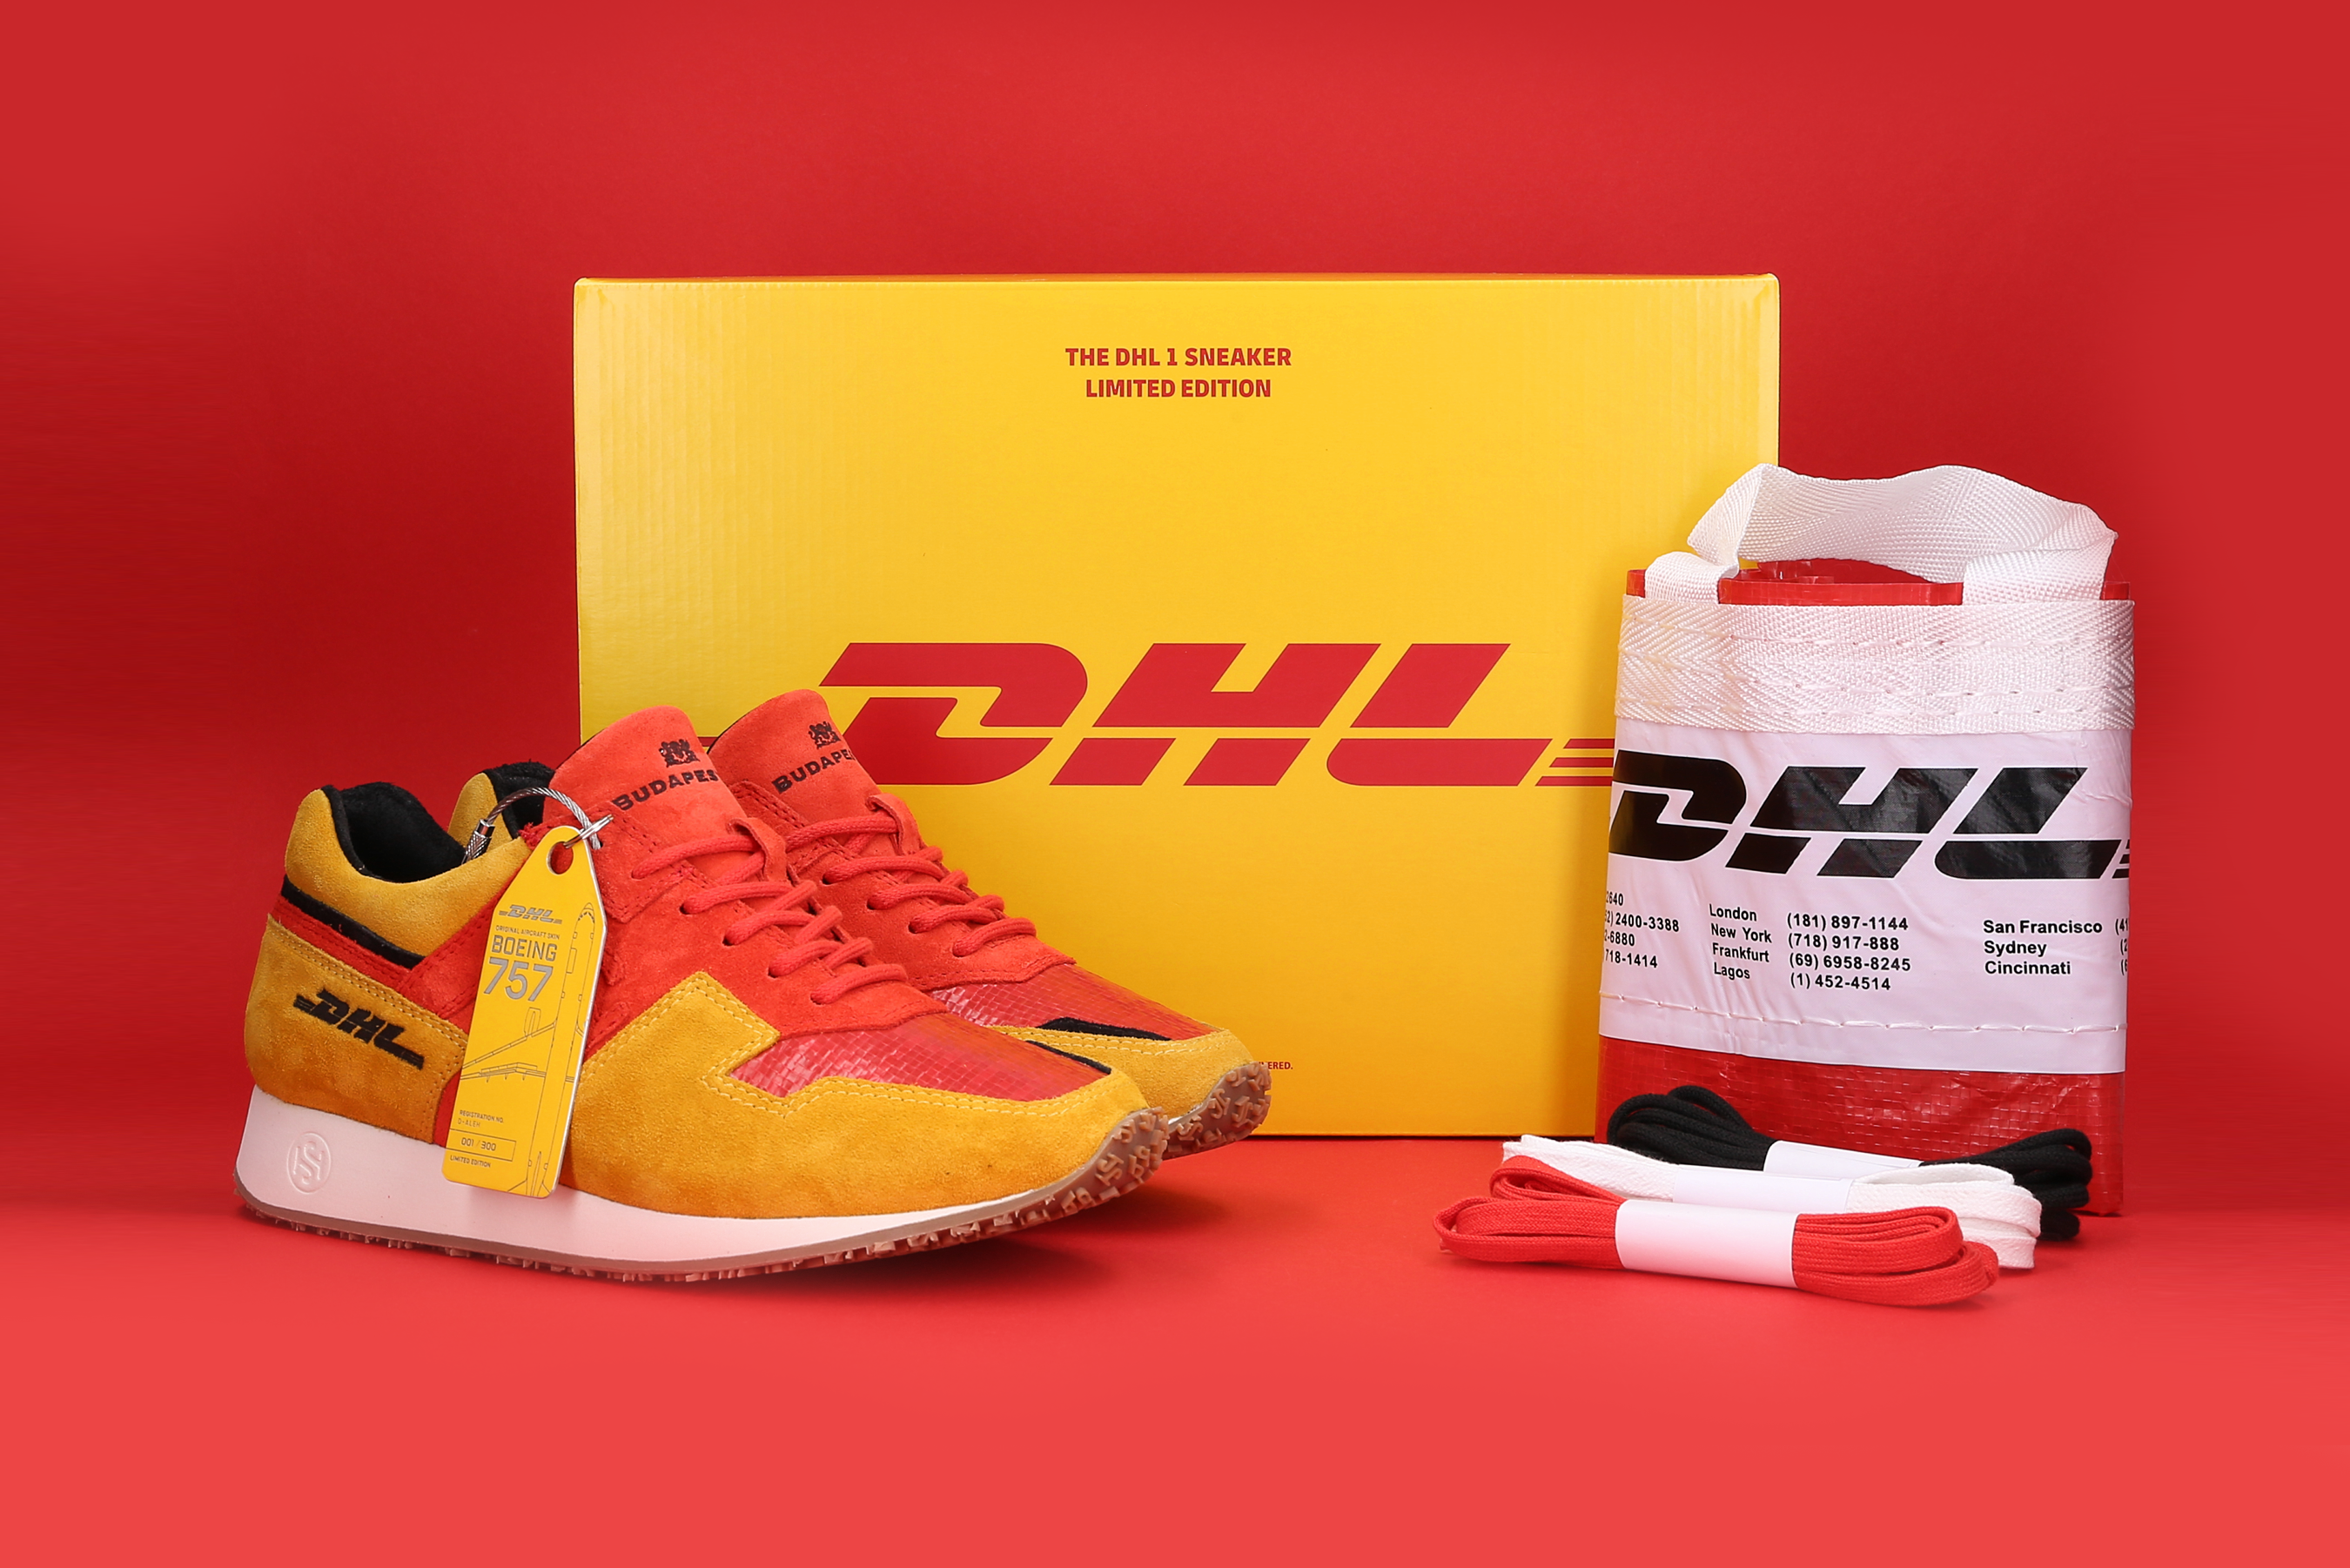 DHL 1 SNEAKER featuring Aviationtag